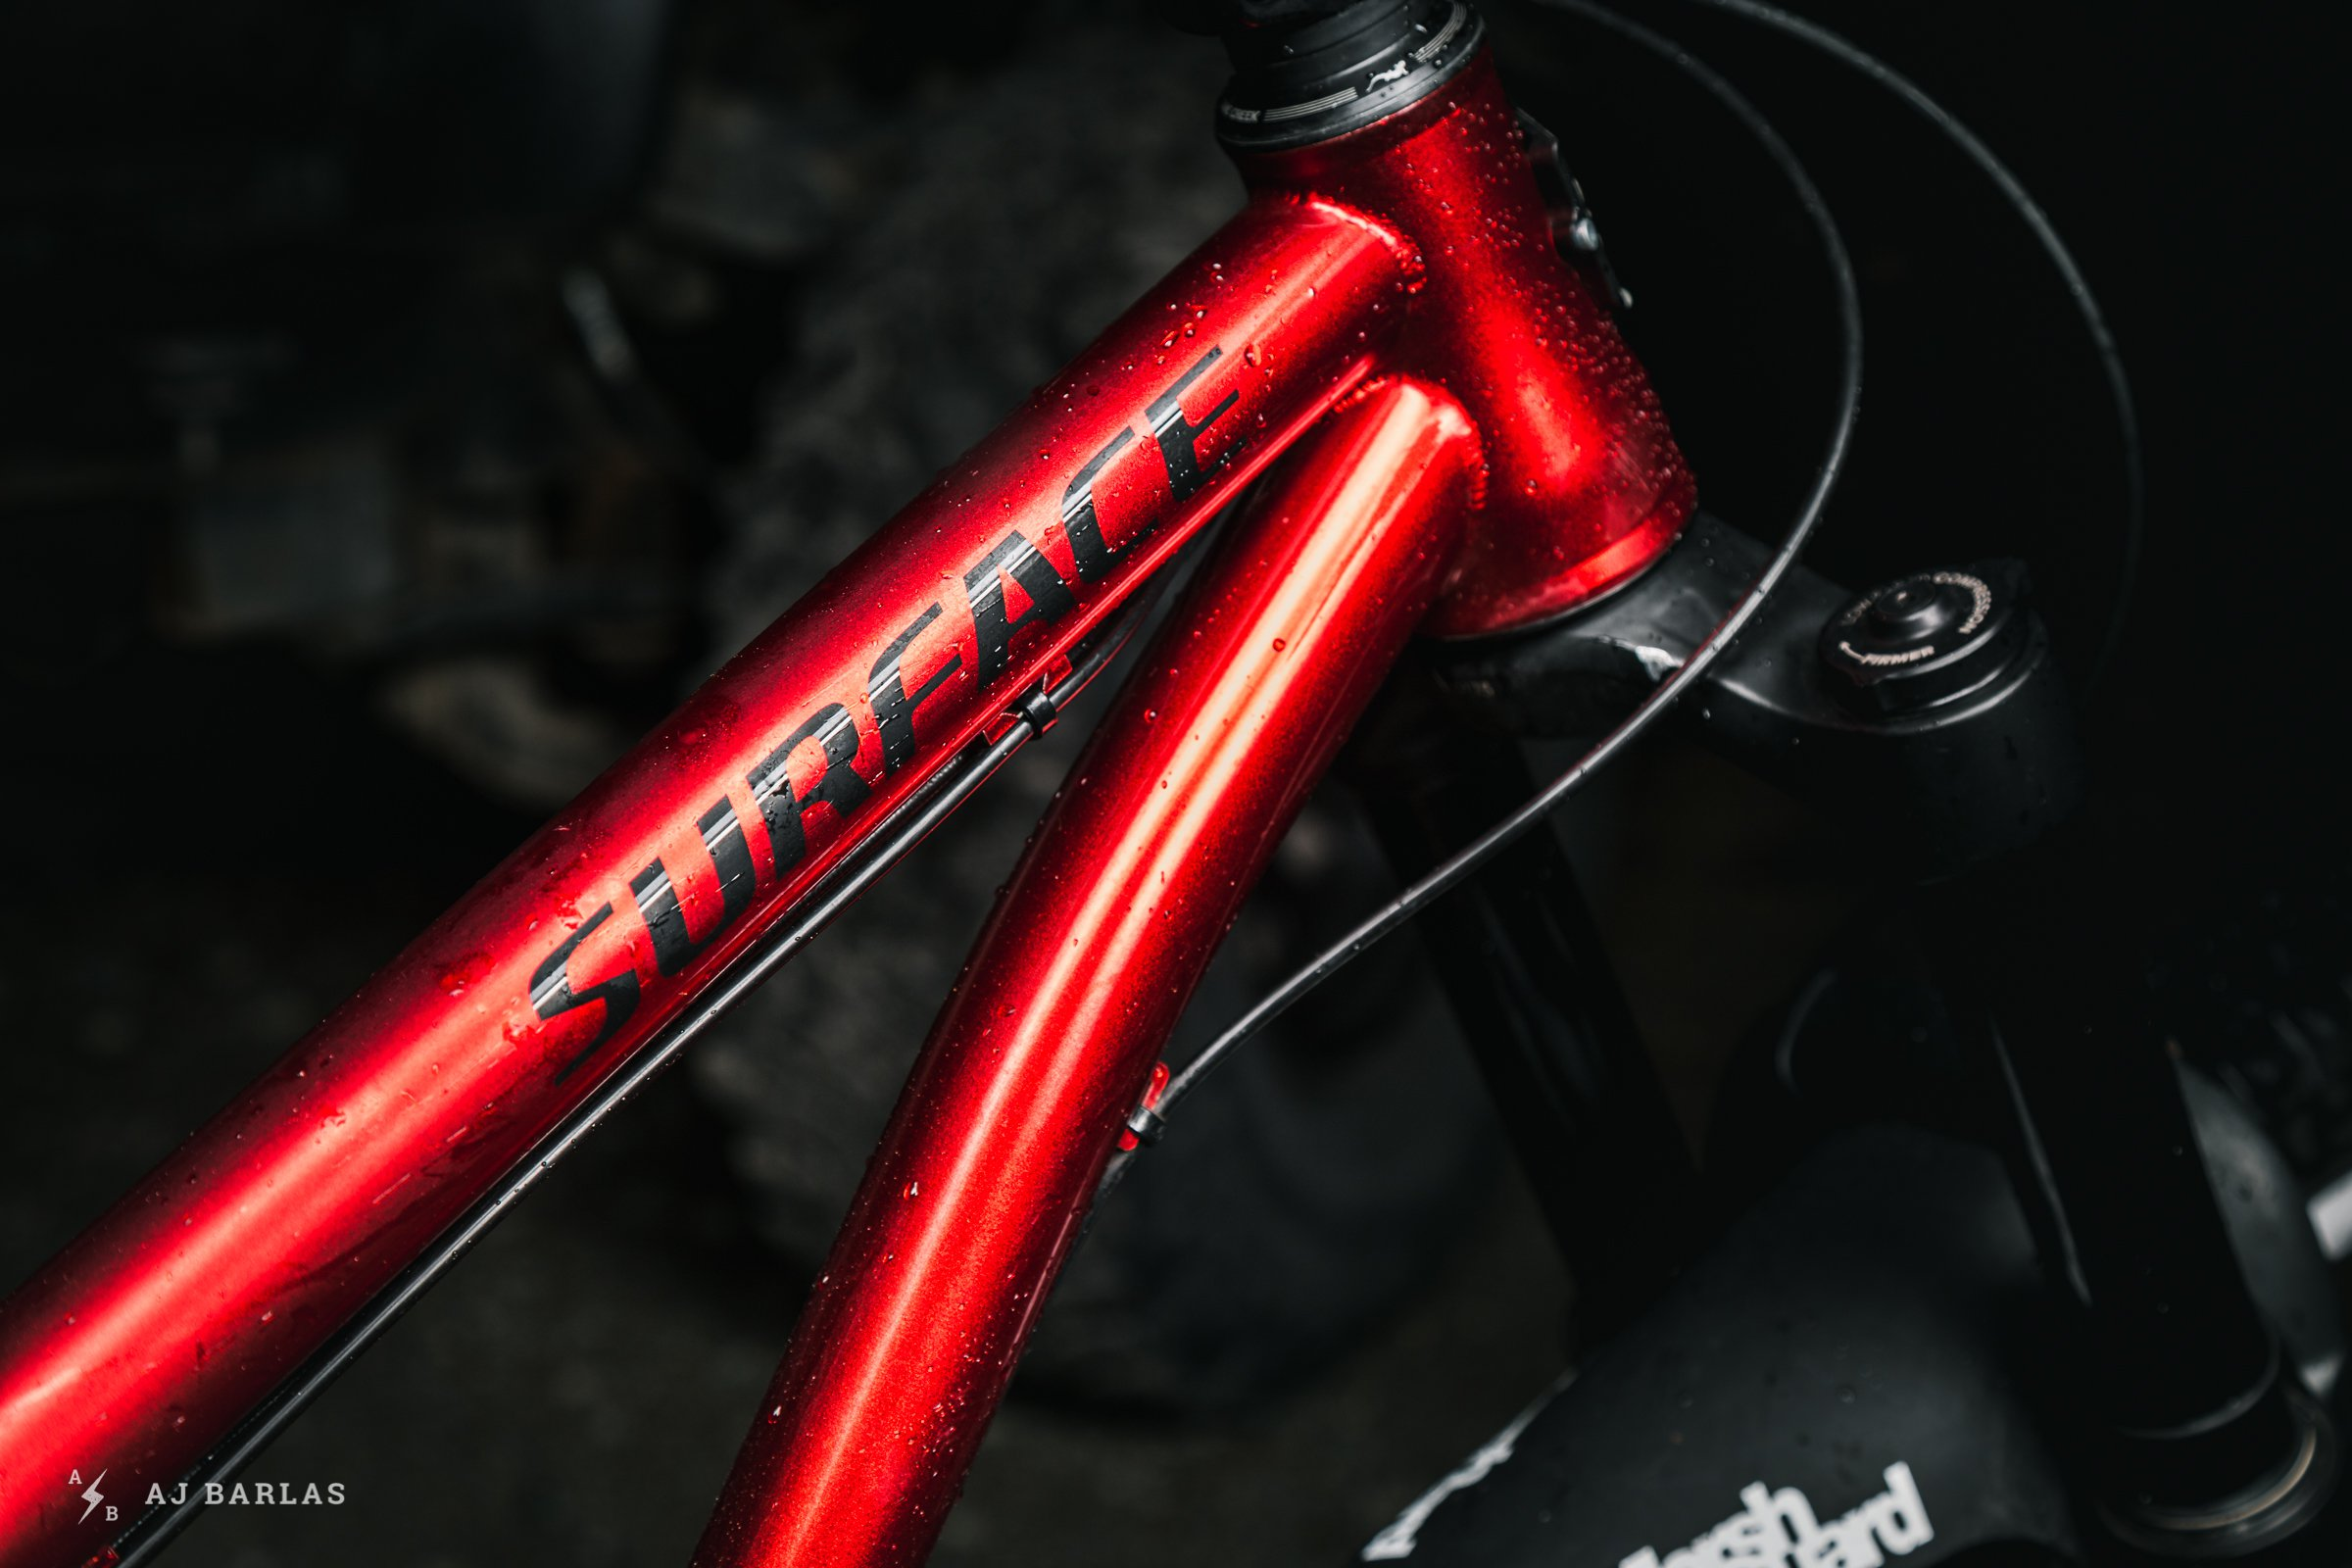 Glossy Apple Red Colour on Owen Foster's Custom Chromag Surface Sheena